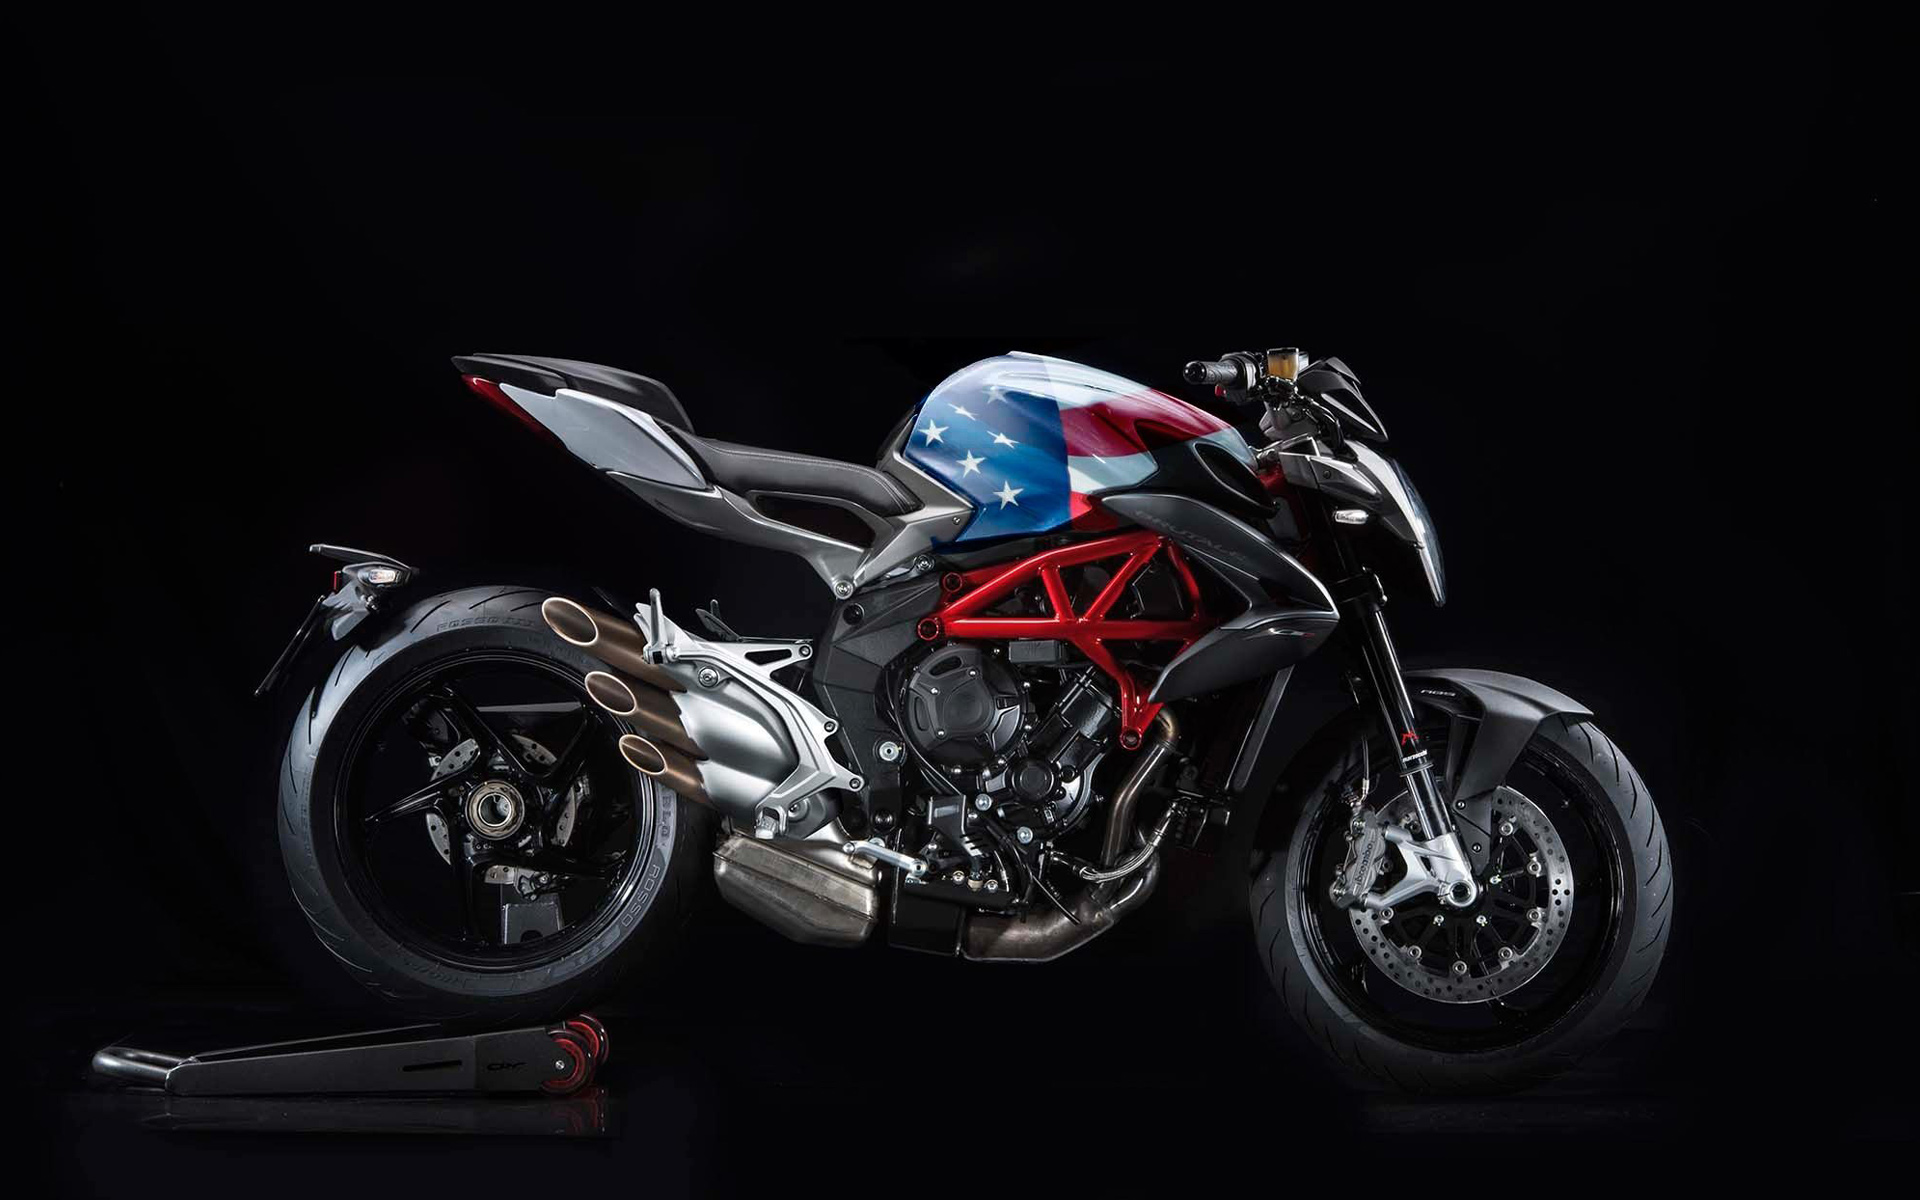 MV Agusta Brutale 800 Wallpapers HD